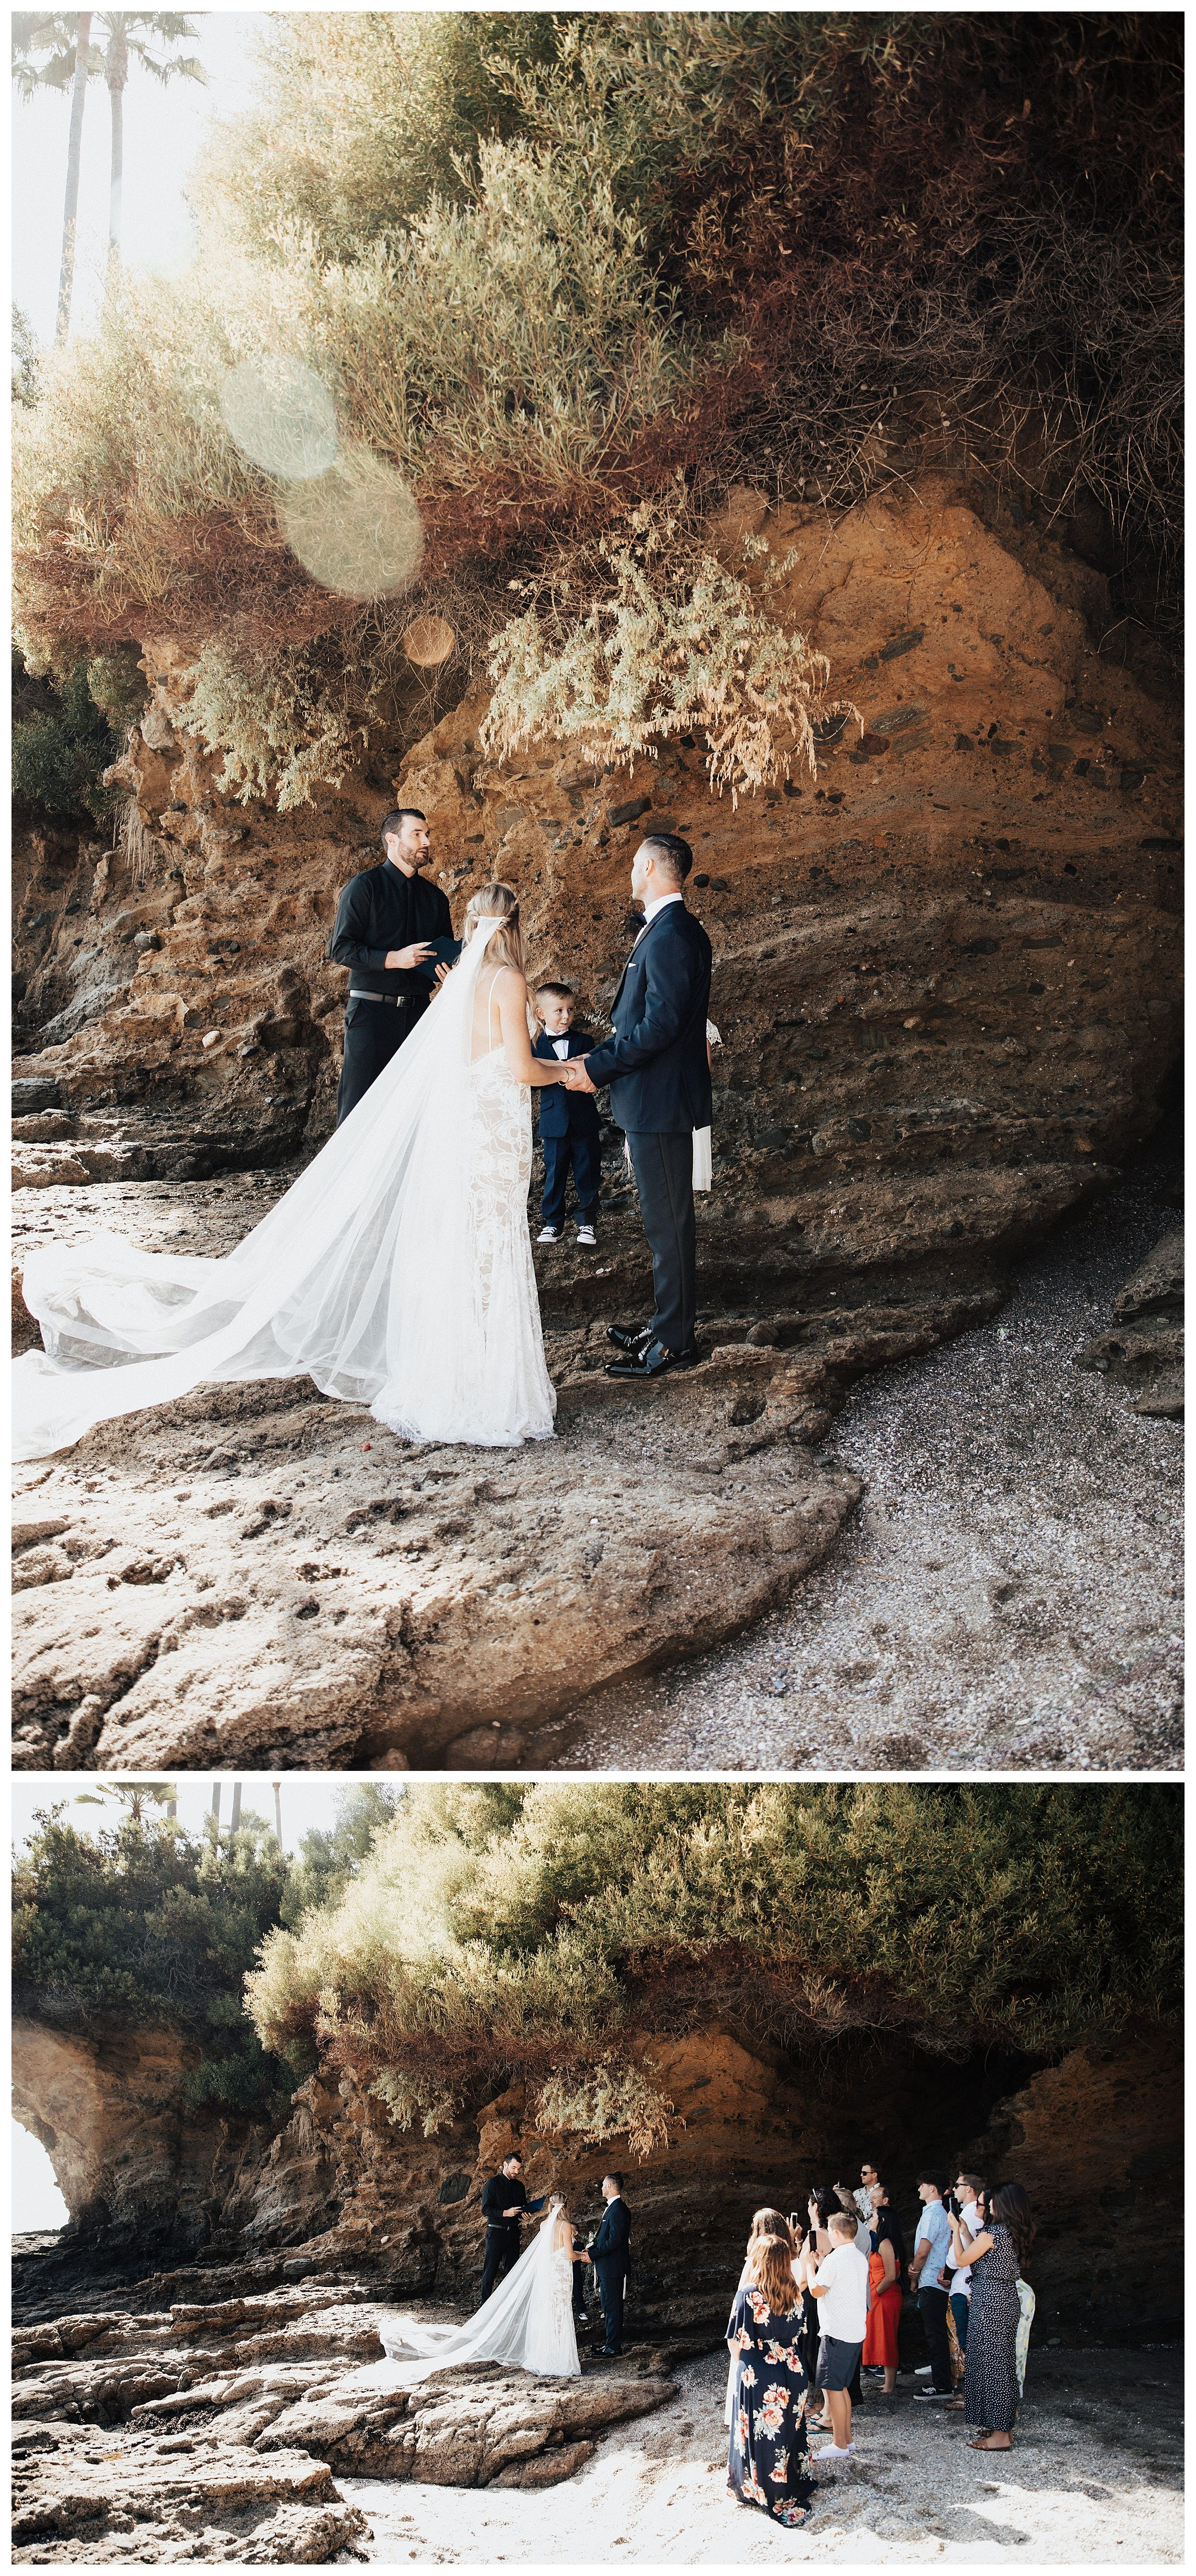 beach wedding ceremony, beach elopement ceremony, beach wedding near caves